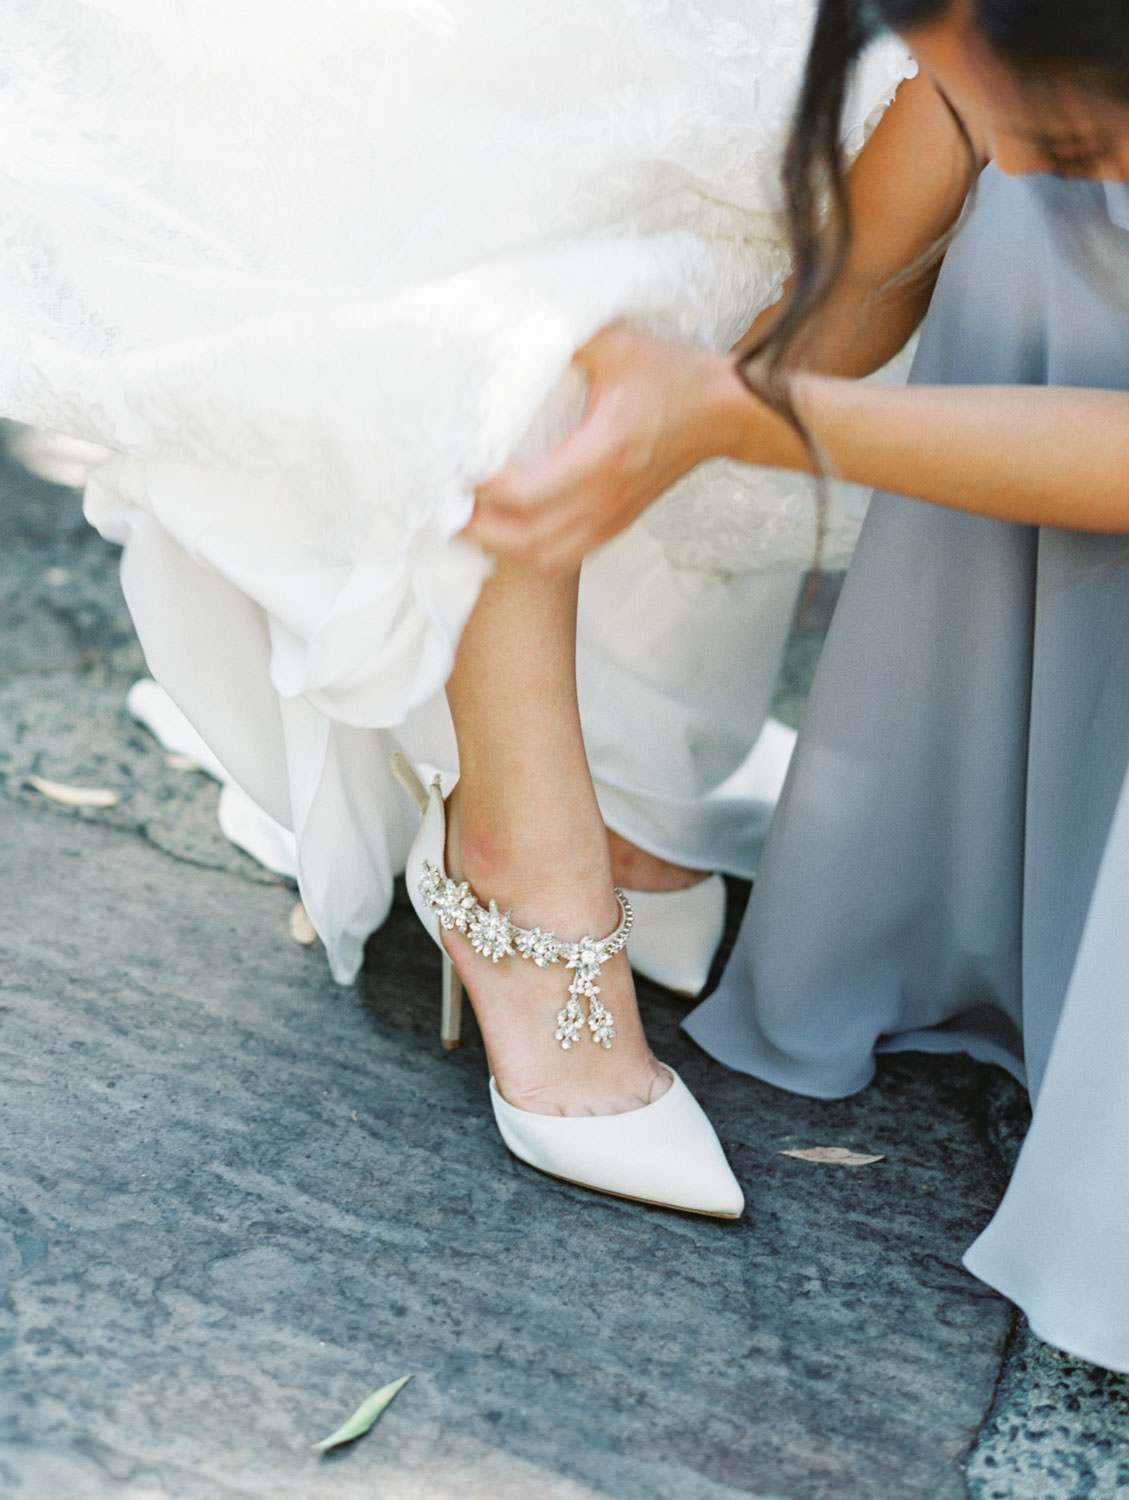 Bride getting into her Esperanza Badgley Mischka heels. Film photo by Cavin Elizabeth Photography